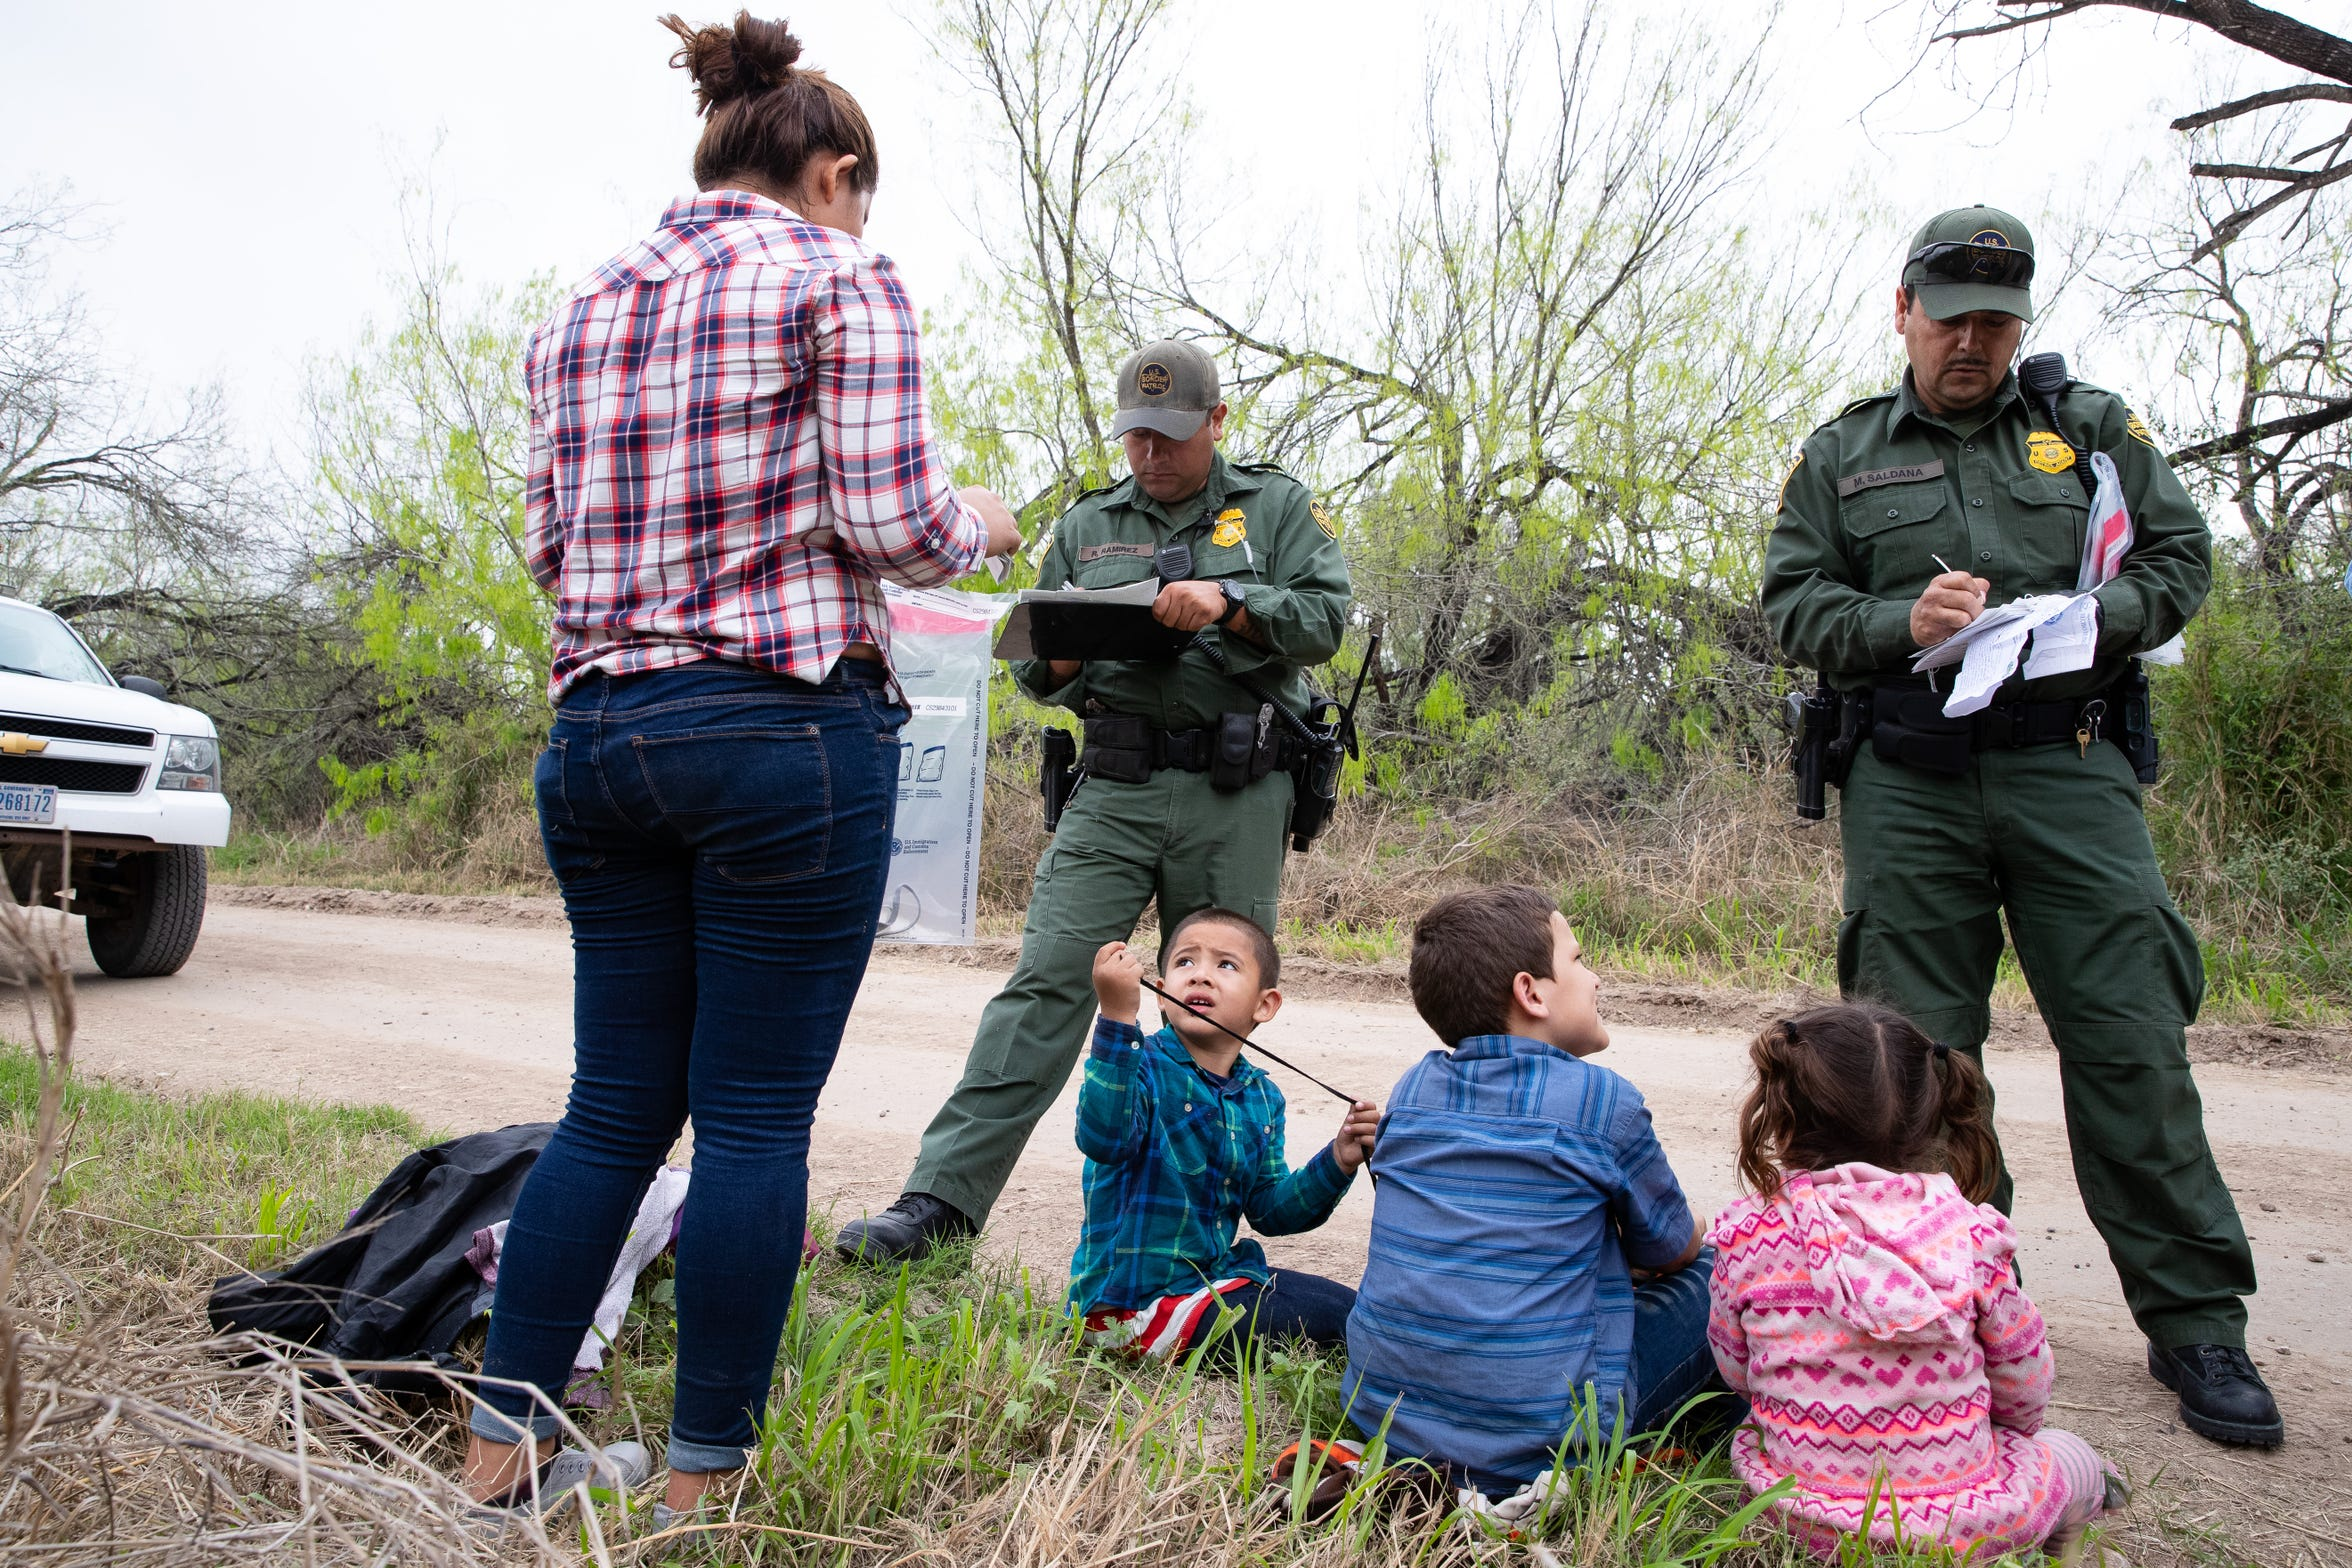 Border Patrol Agents take in to custody migrants shortly after crossing the river from Mexico near Mission TX, on Tuesday, Feb. 28, 2019.